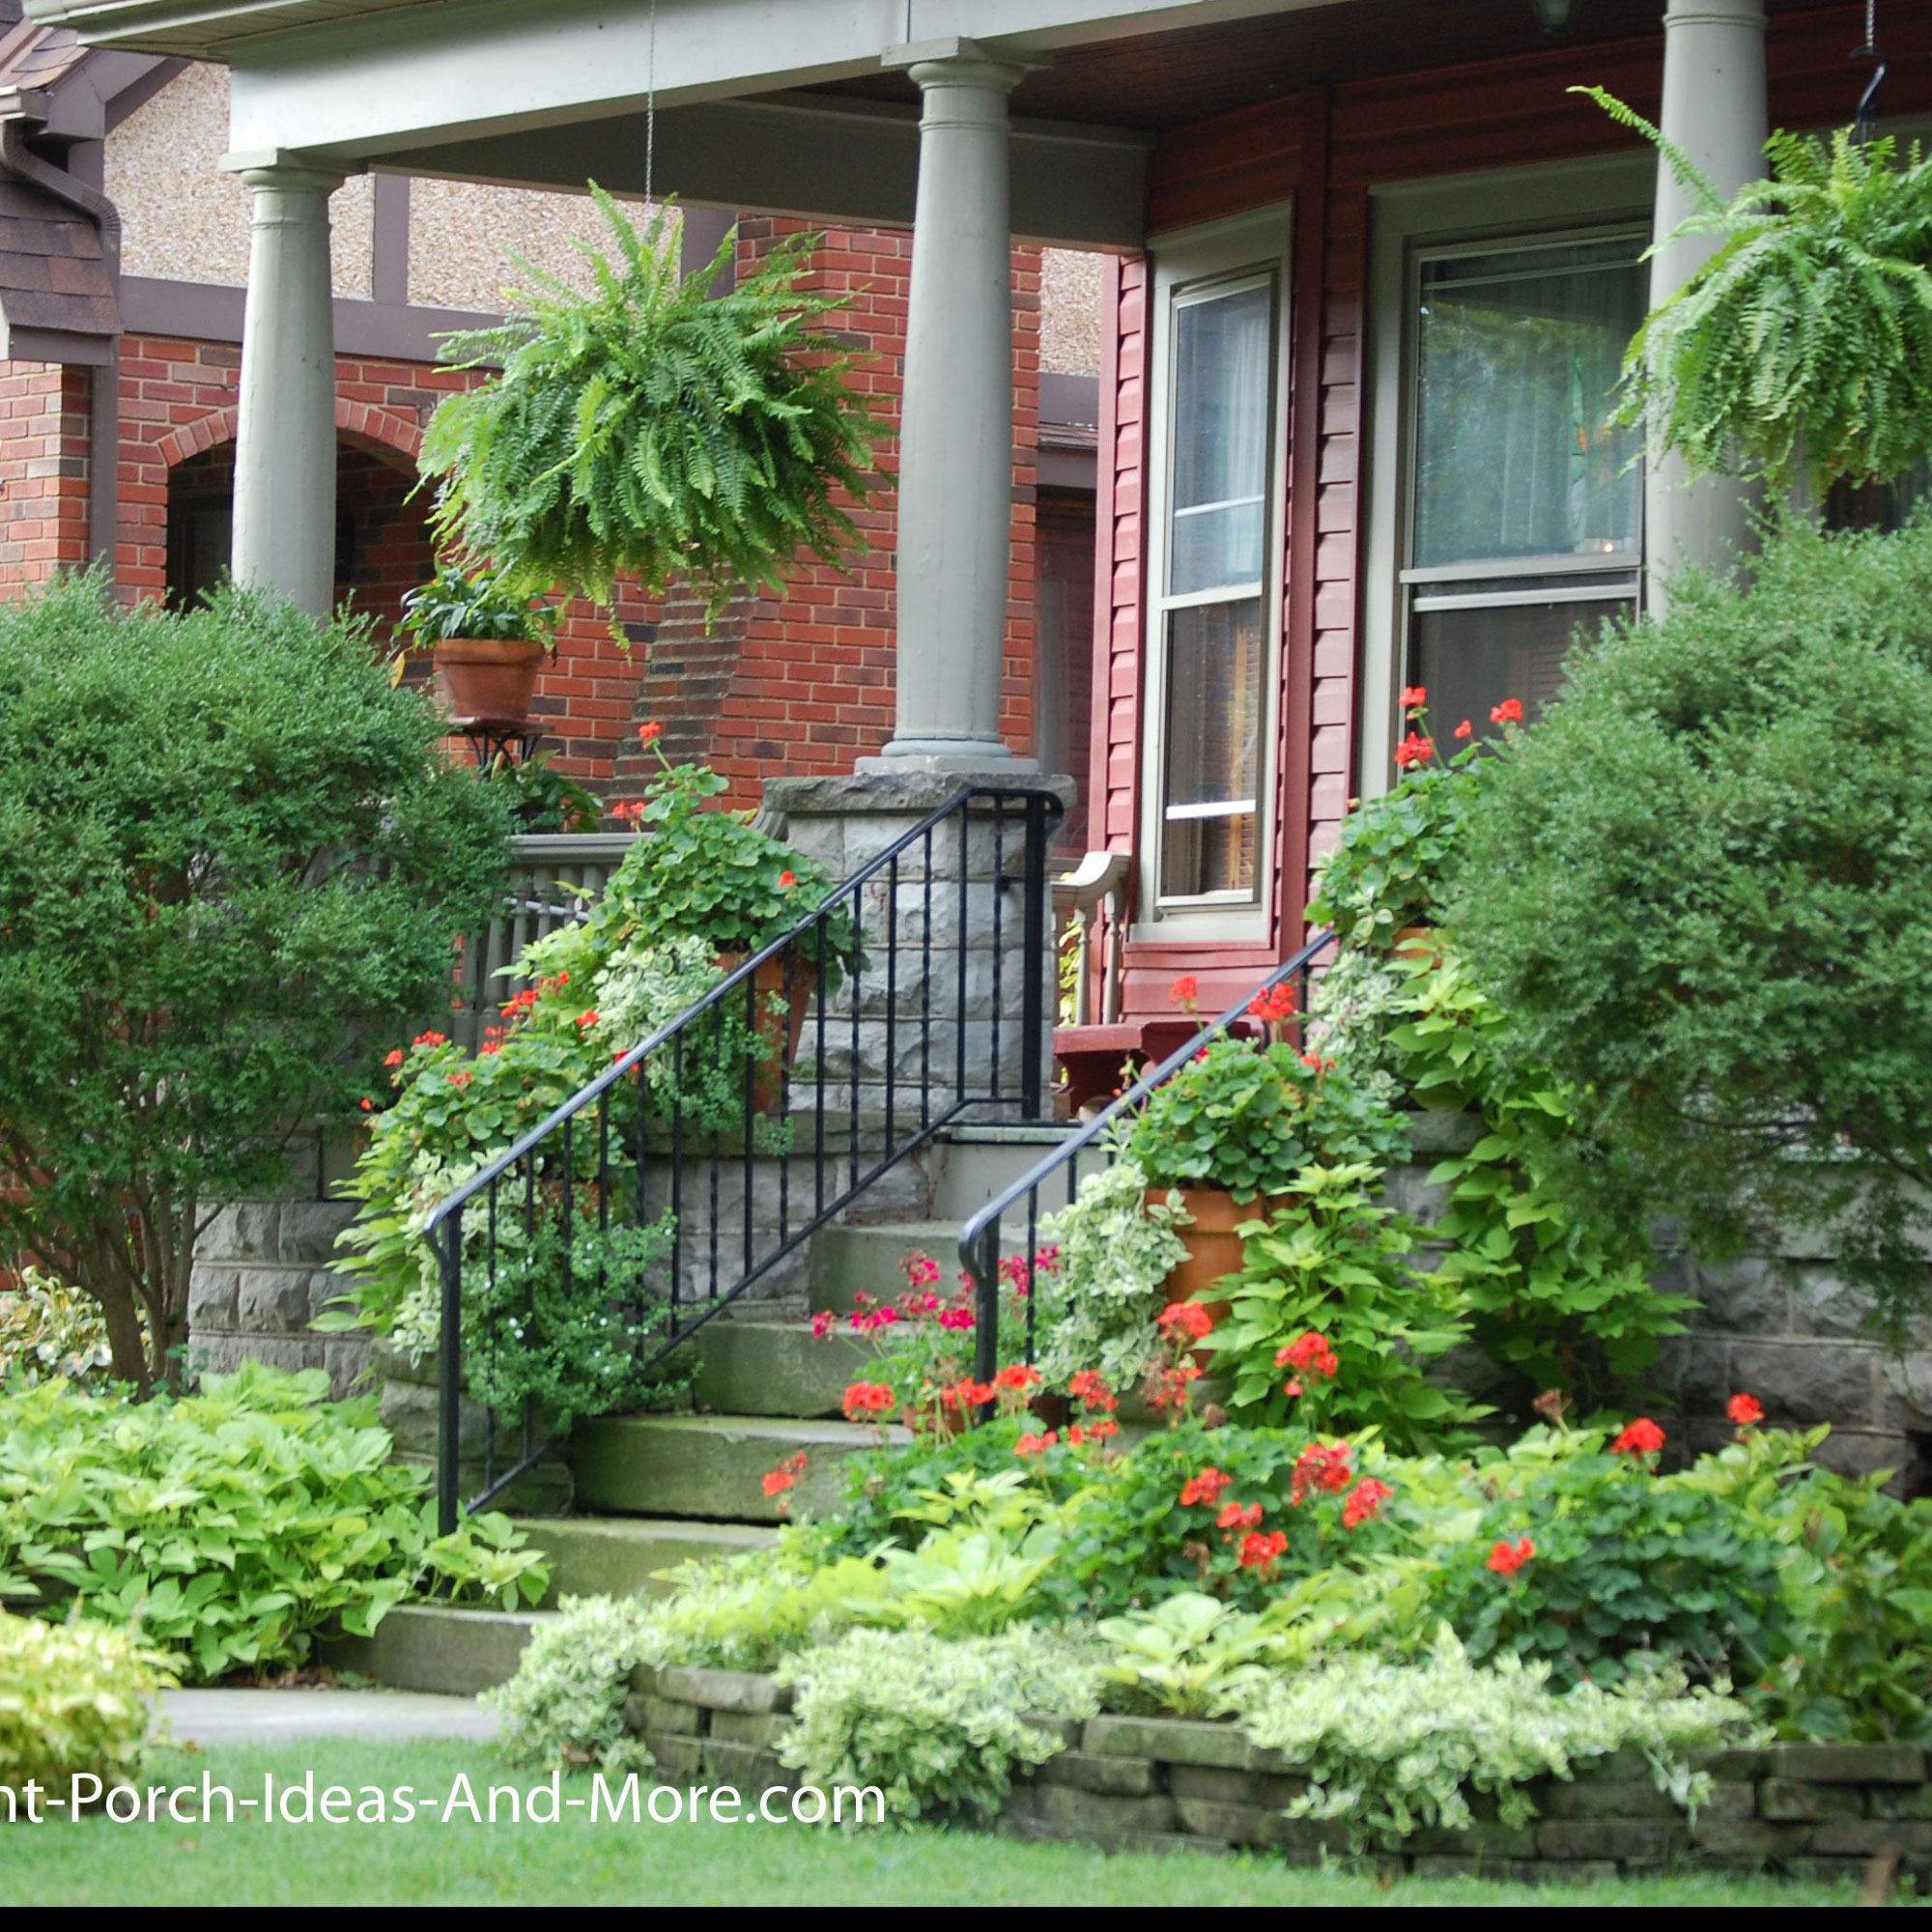 Porch landscaping ideas for your front yard and more for Landscaping ideas